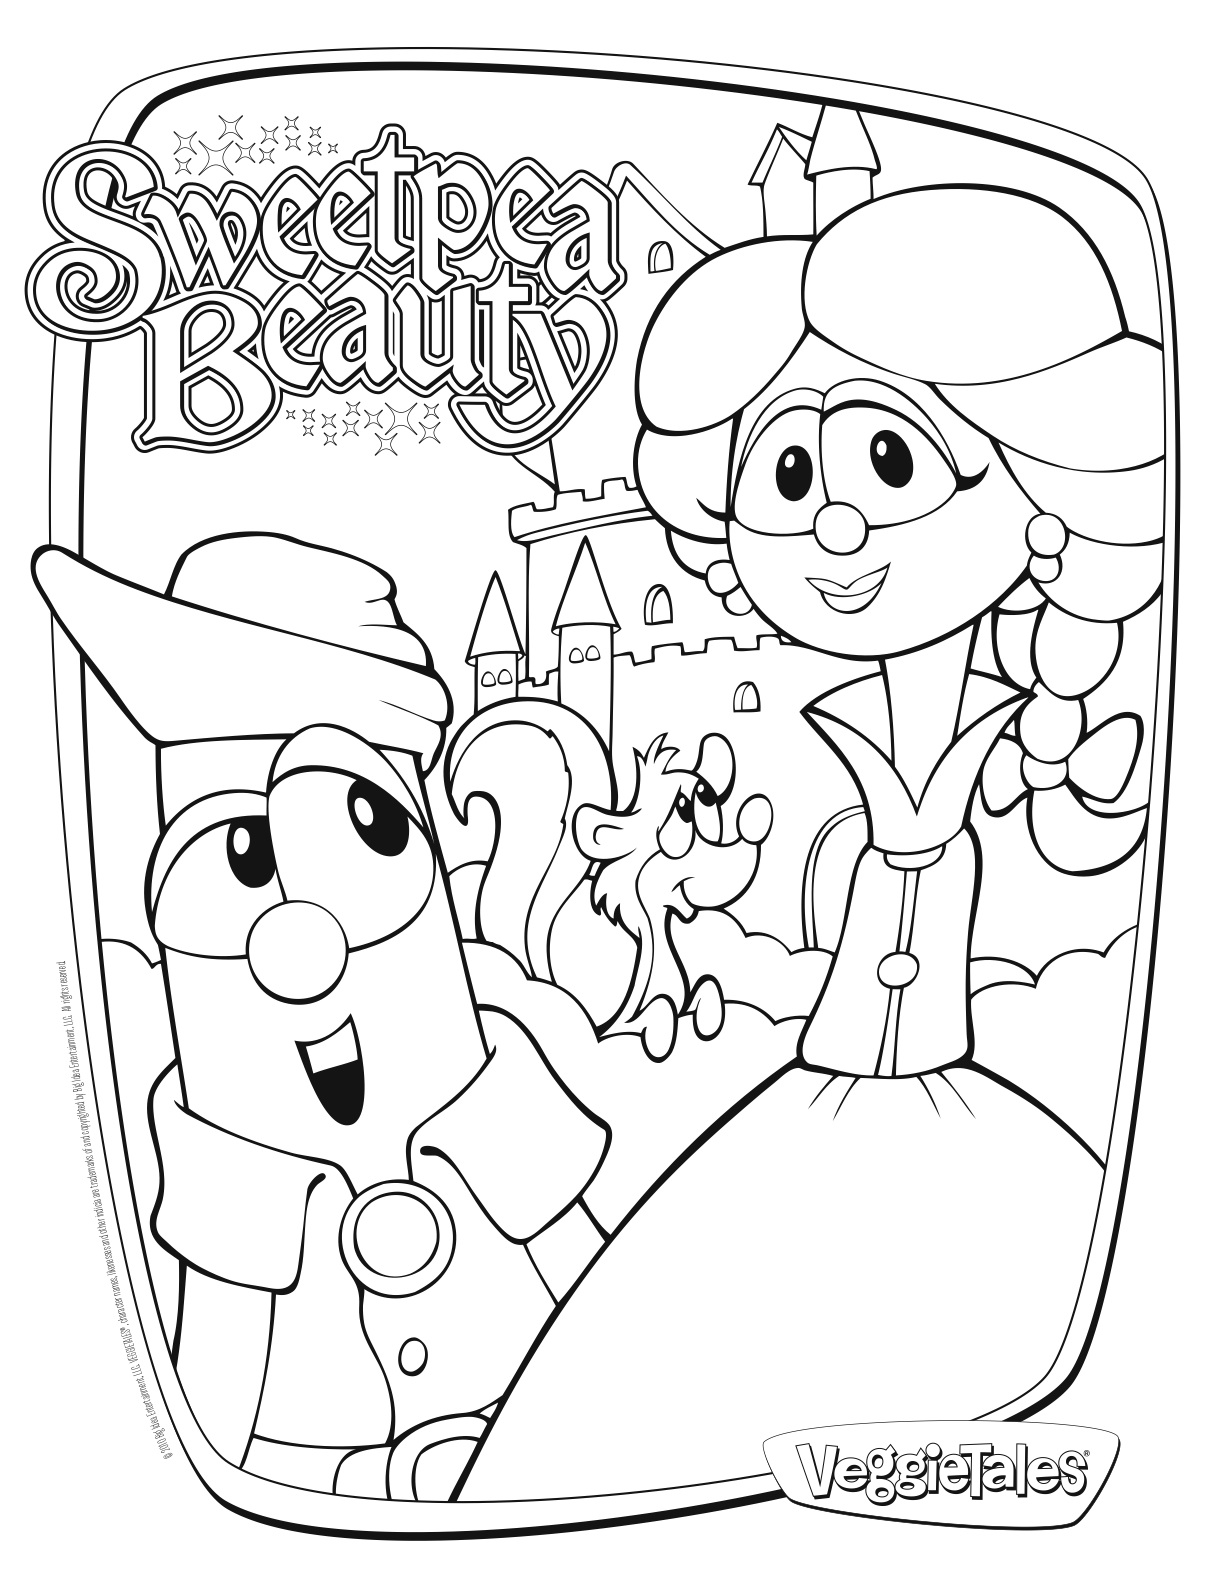 veggie tales coloring pages the ultimate veggietales web site coloring